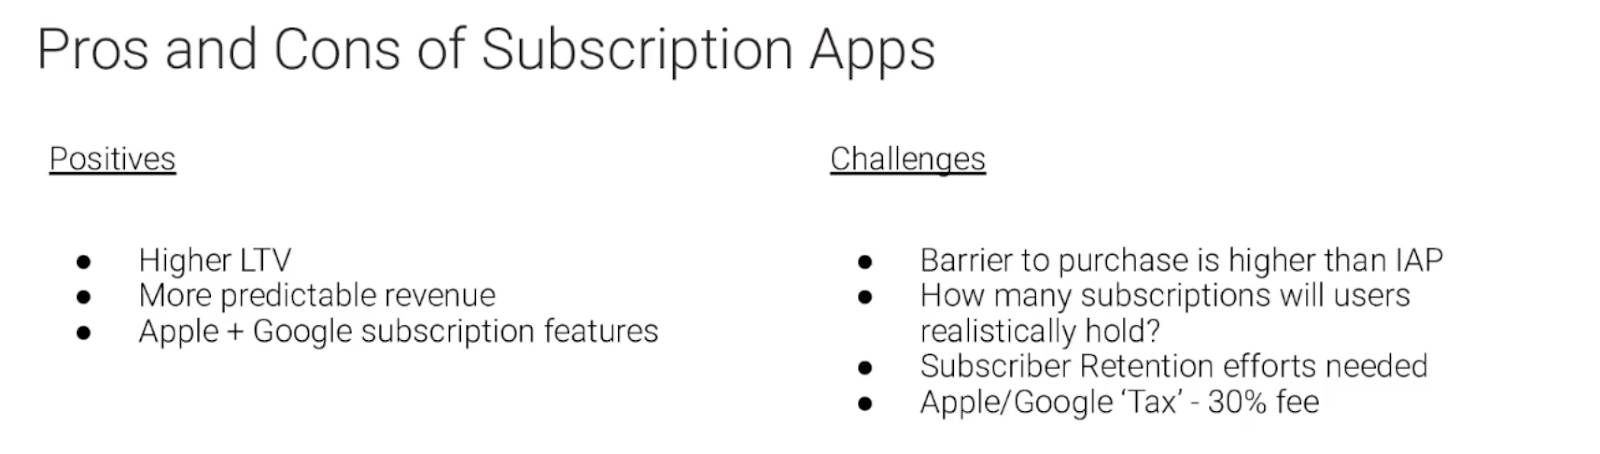 Subscription-Apps-Pros-Cons.png